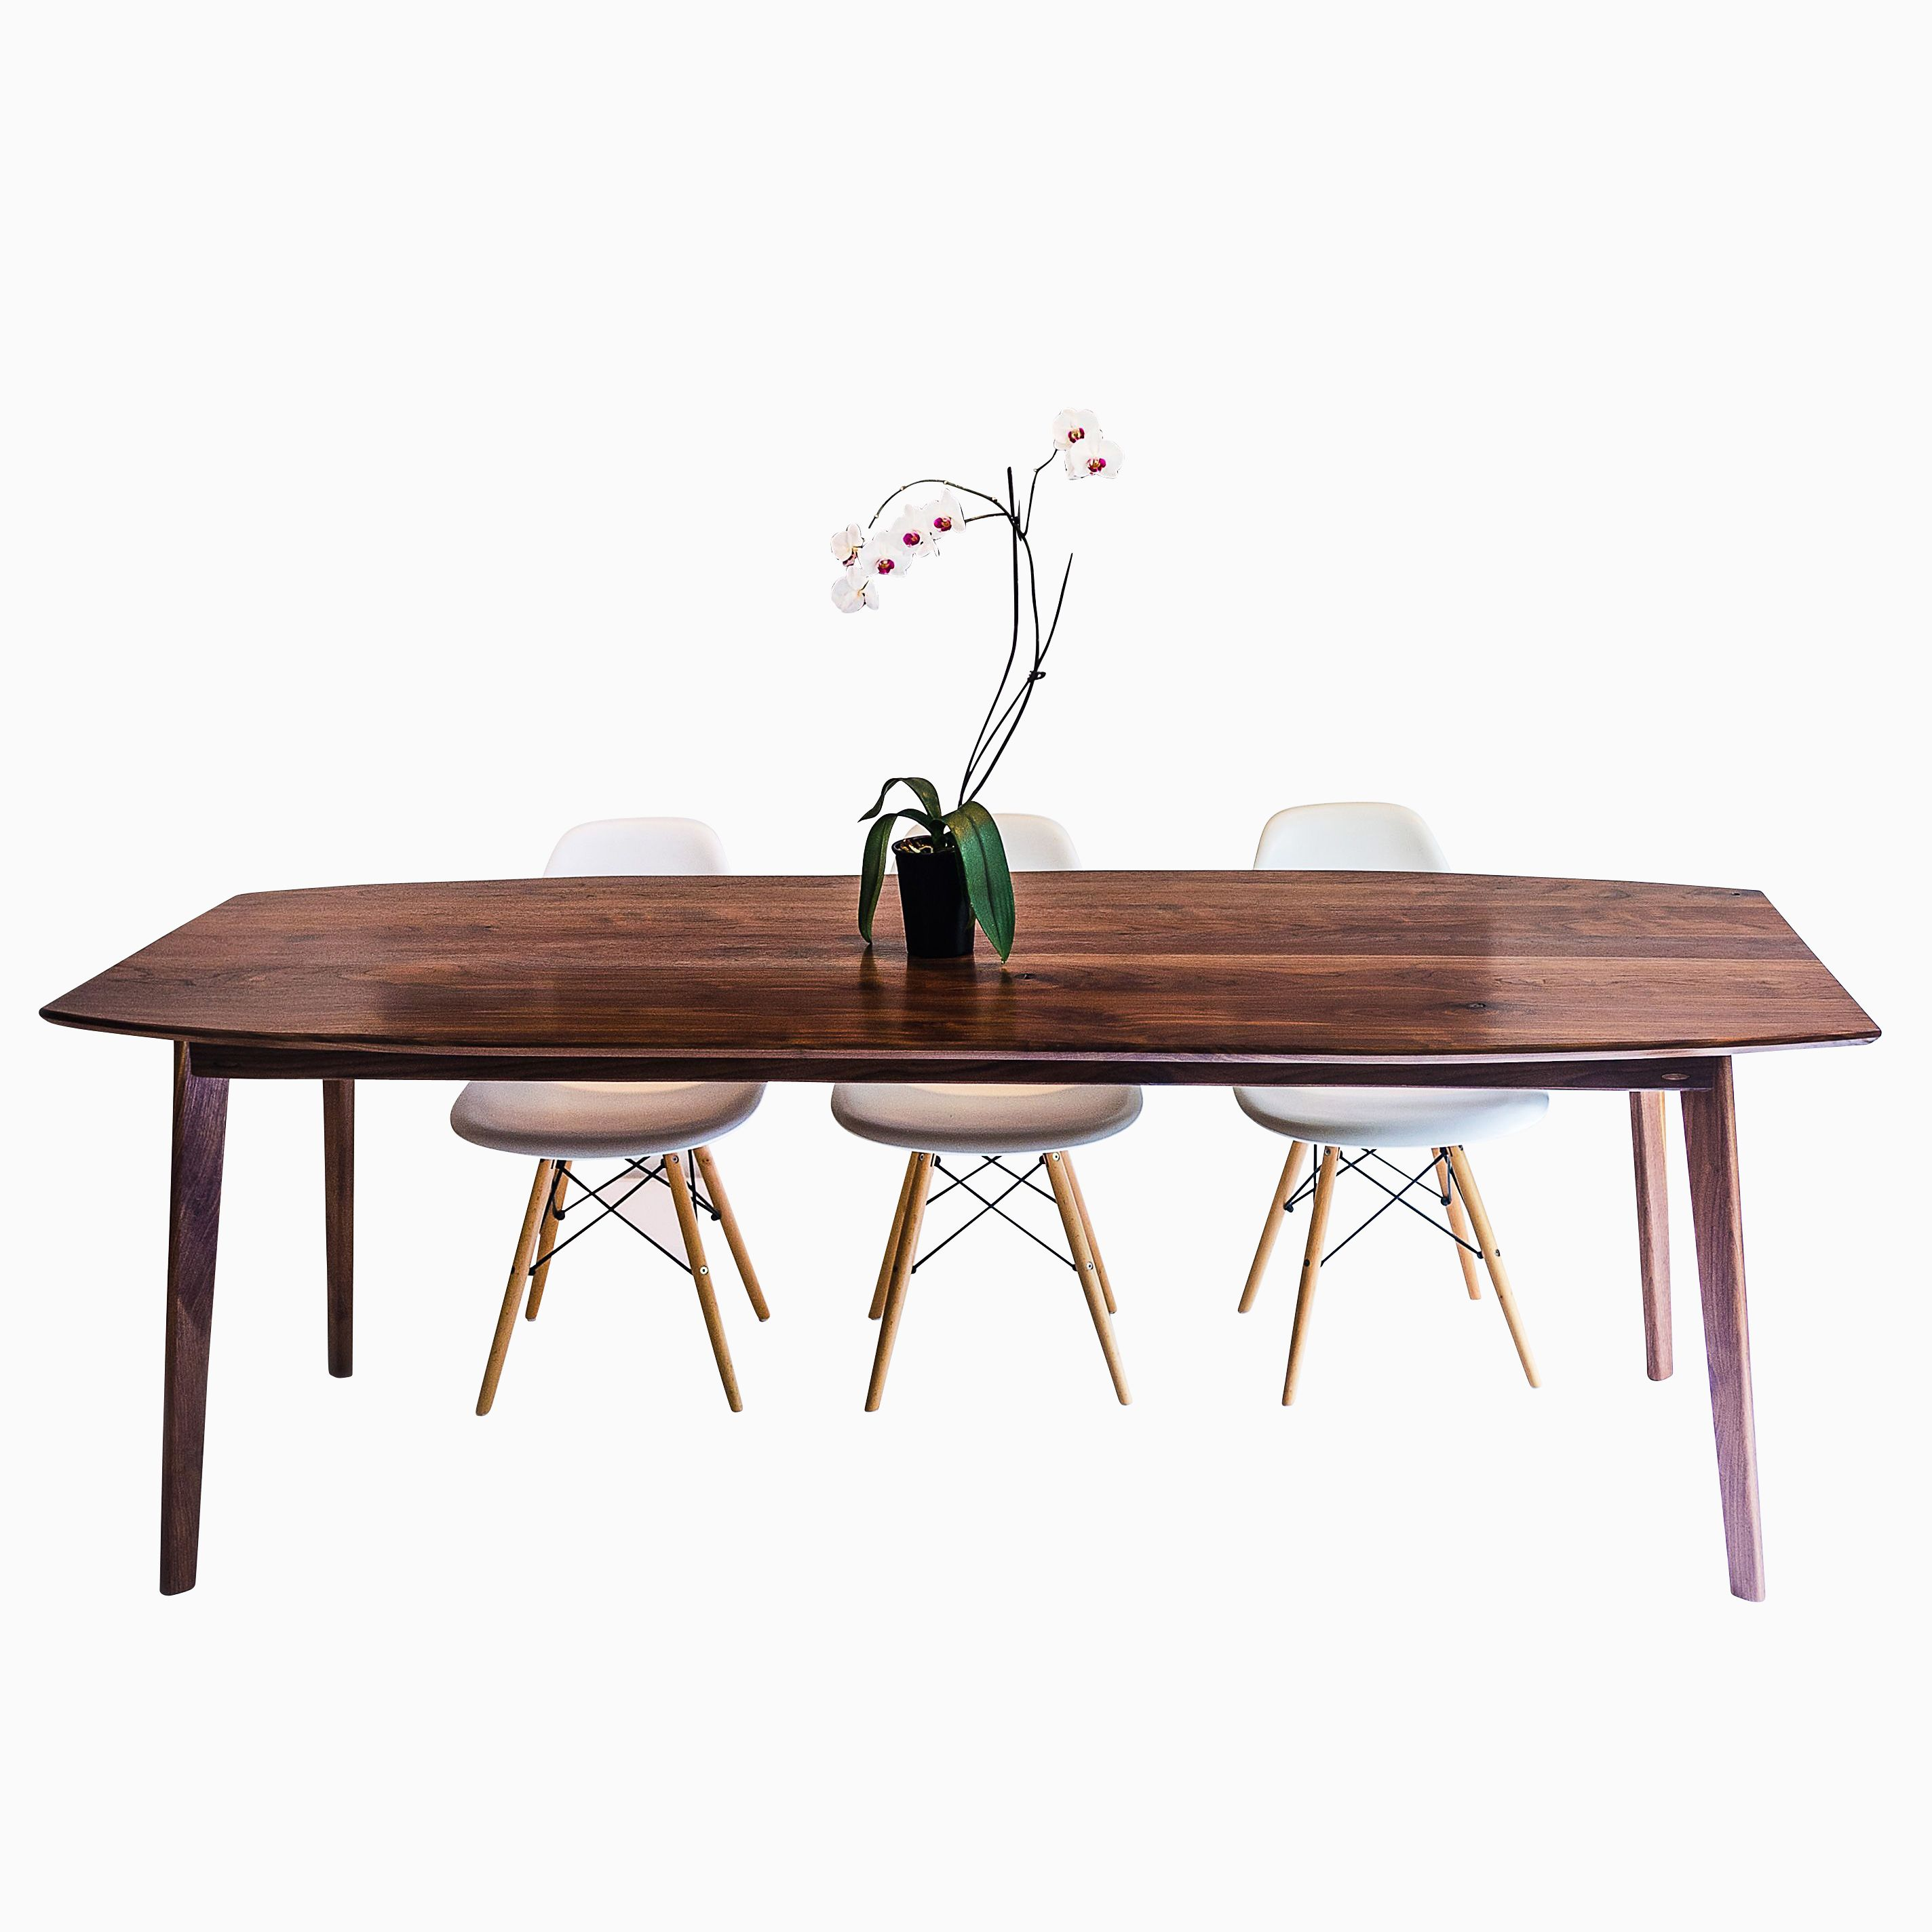 Mid Century Modern Dining: Buy A Custom The Santa Monica: Solid Black Walnut Dining